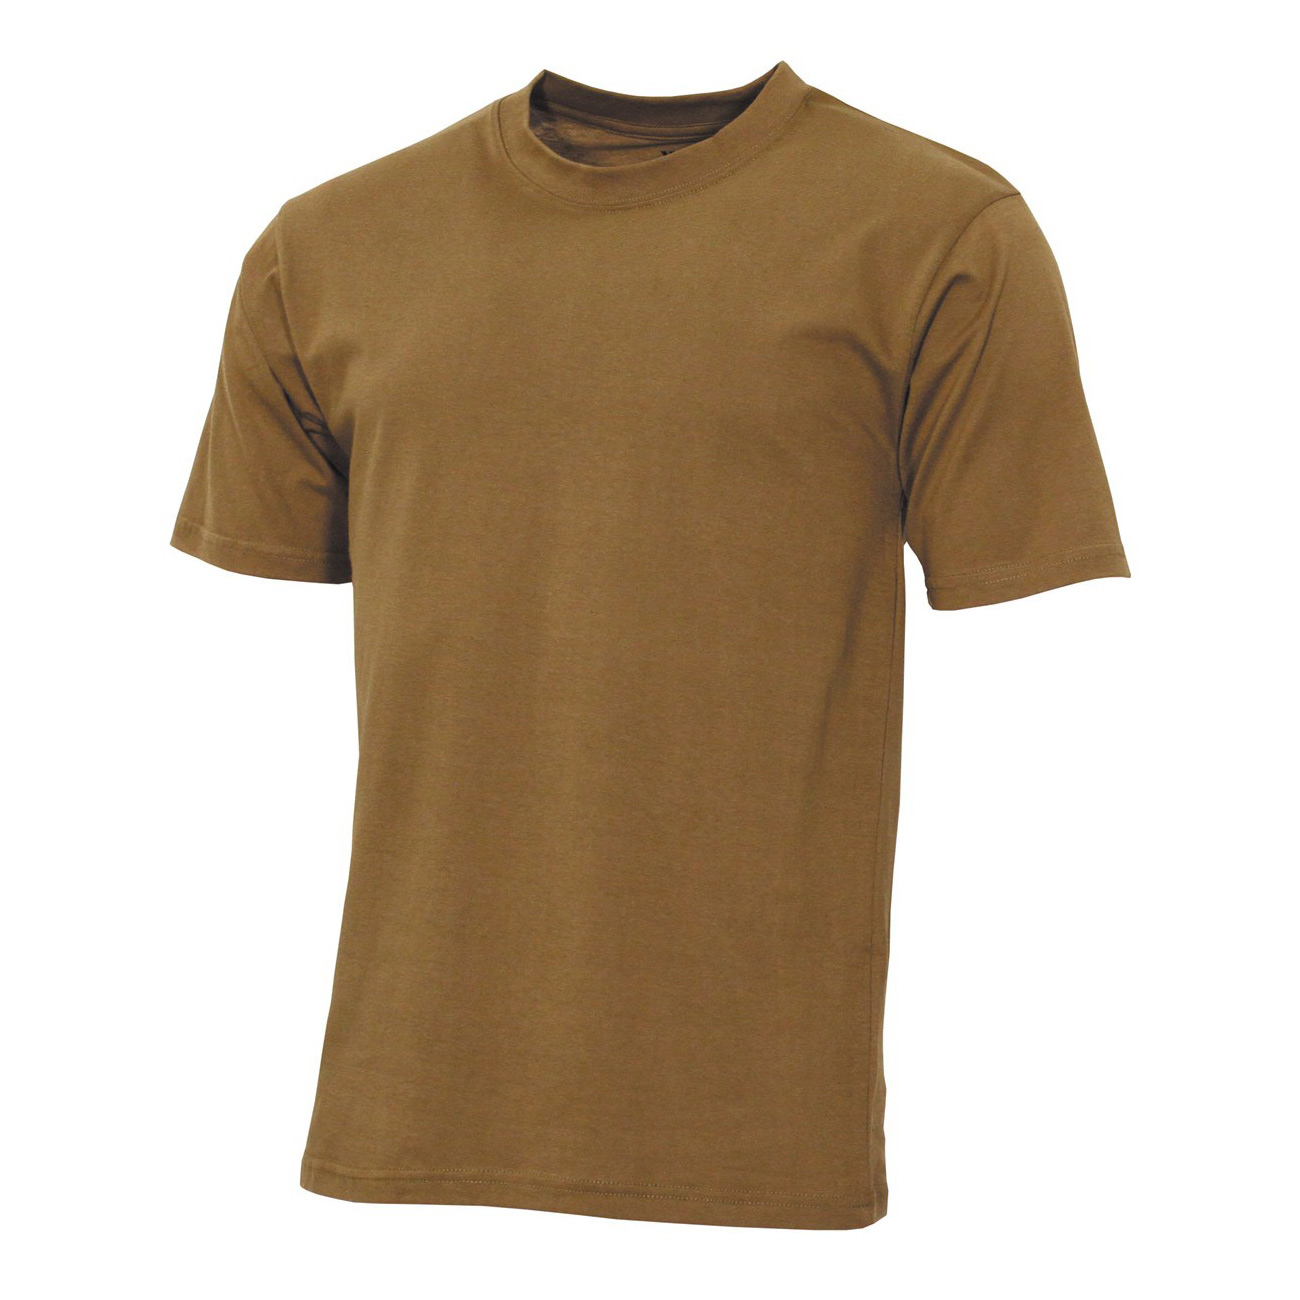 MFH US T-Shirt Streetstyle coyote tan 0